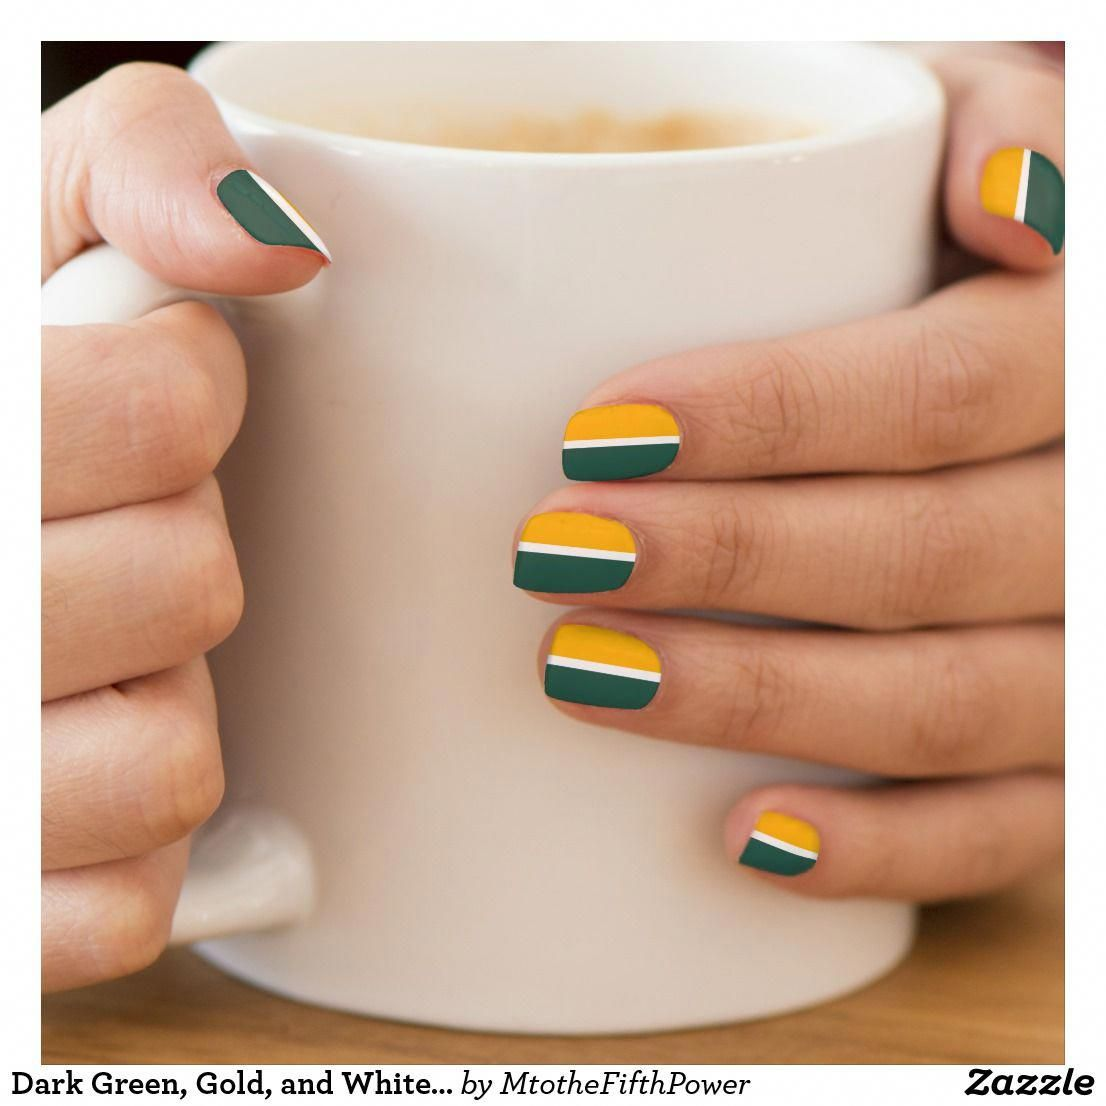 Dark Green, Gold, and White Stripe Minx Nail Art | Zazzle.com